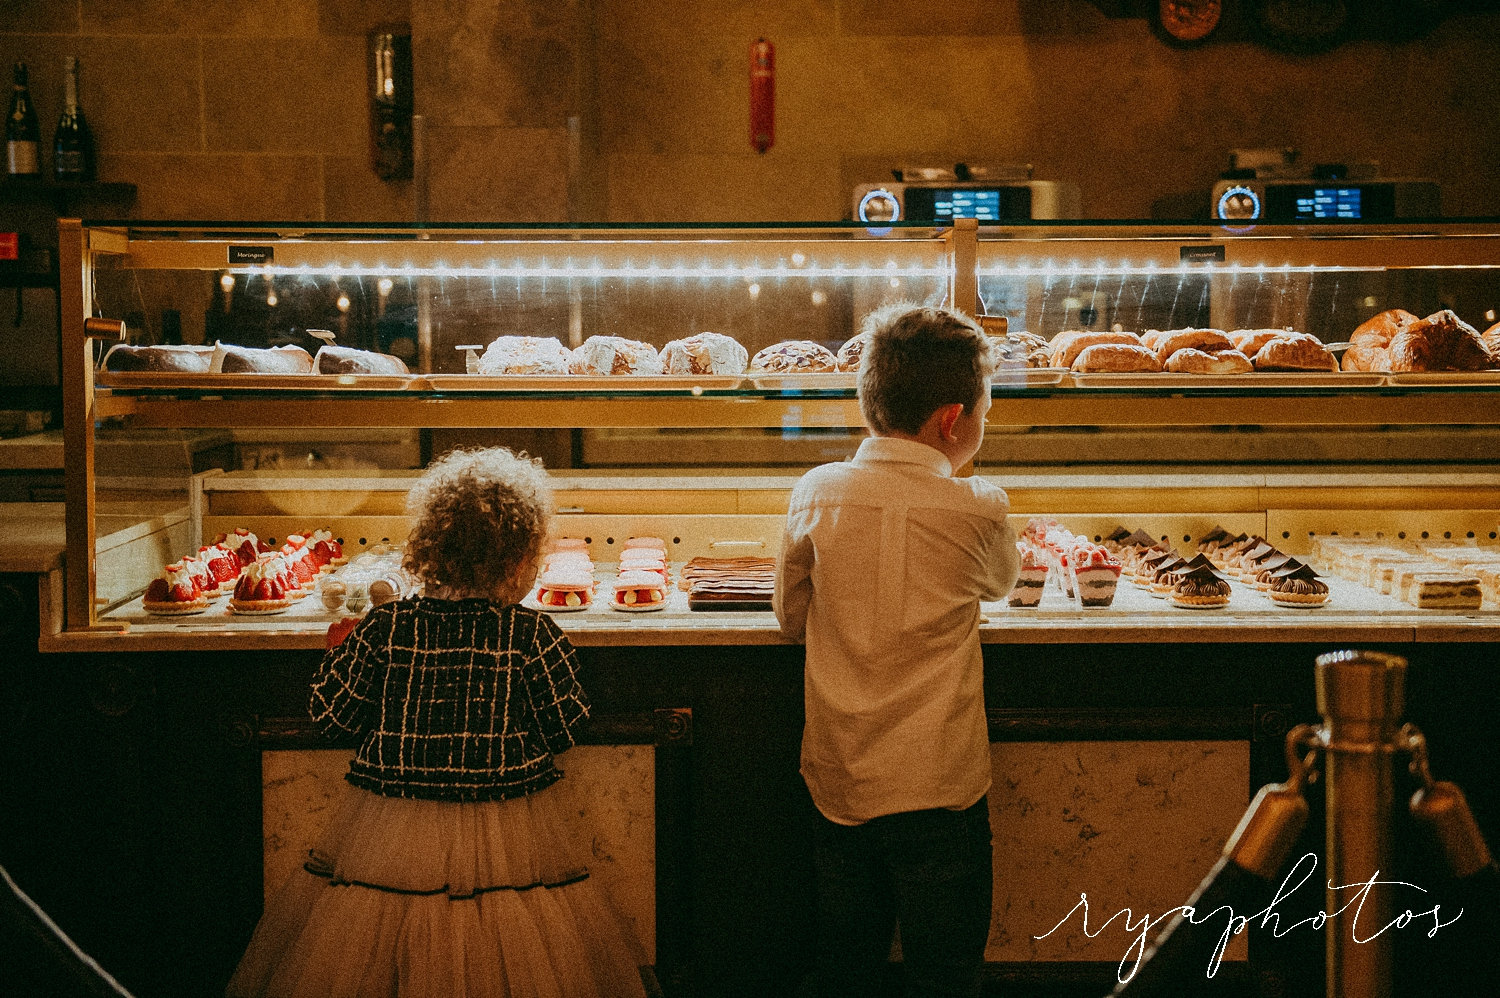 kids choosing pastries, French patisserie, France pavilion, EPCOT